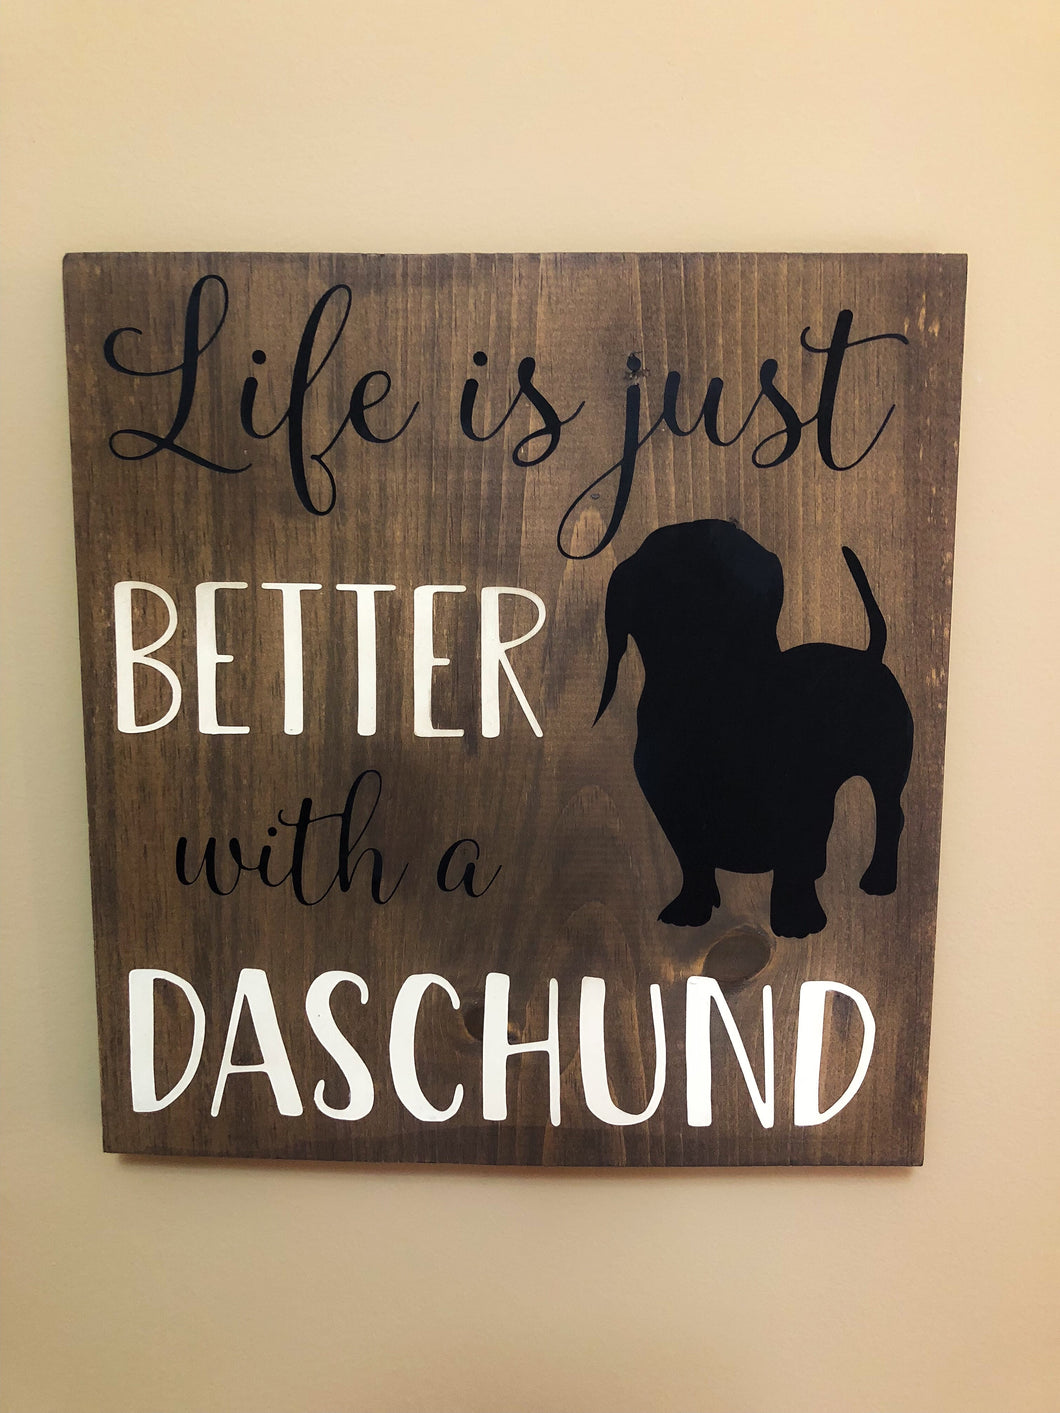 Life is just better with a daschund